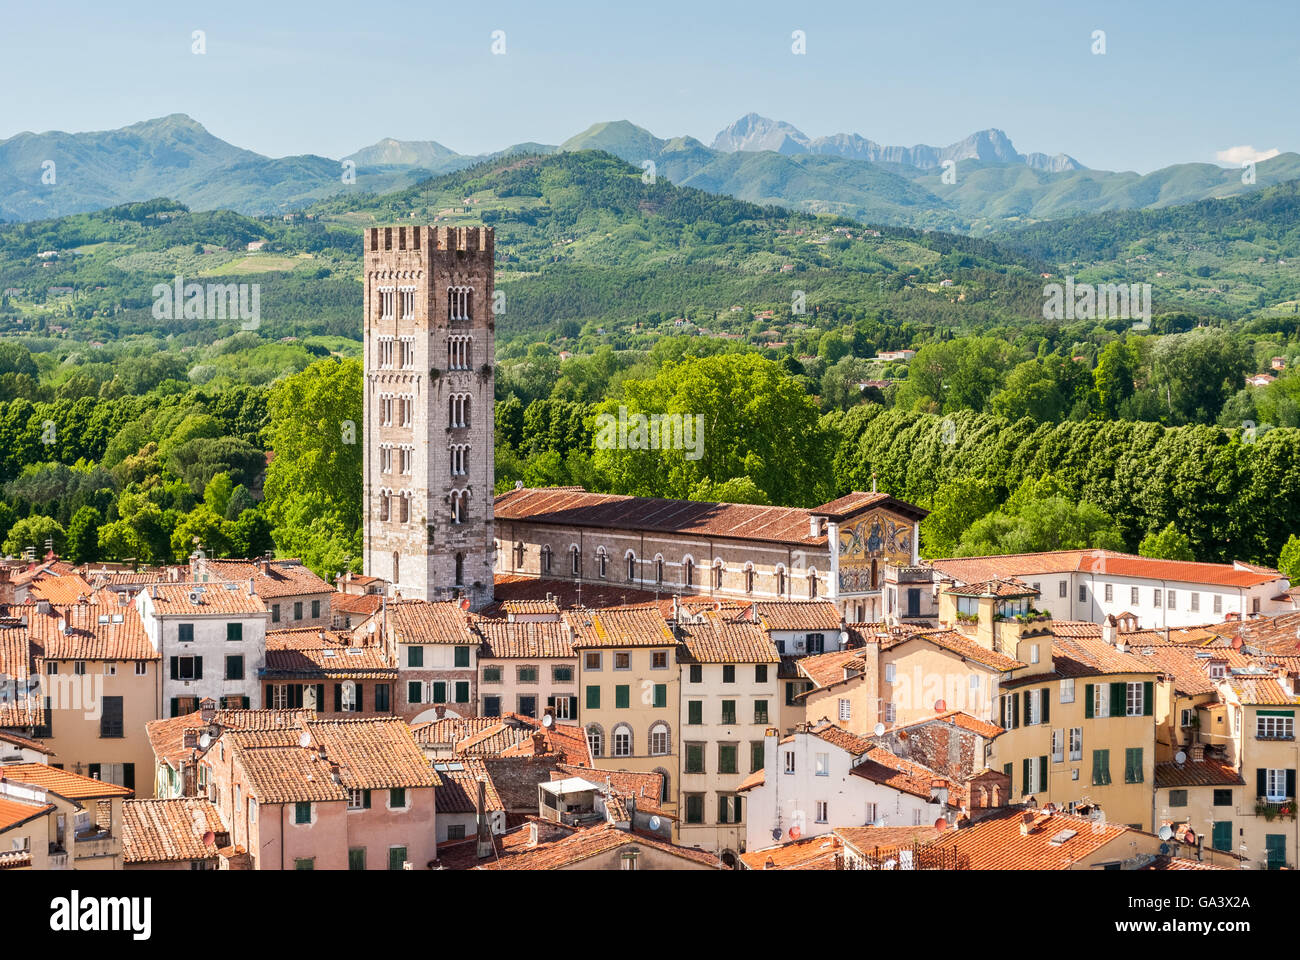 Aerial view of Lucca, in Tuscany, during a sunny afternoon; the bell tower belongs to the San Frediano church - Stock Image